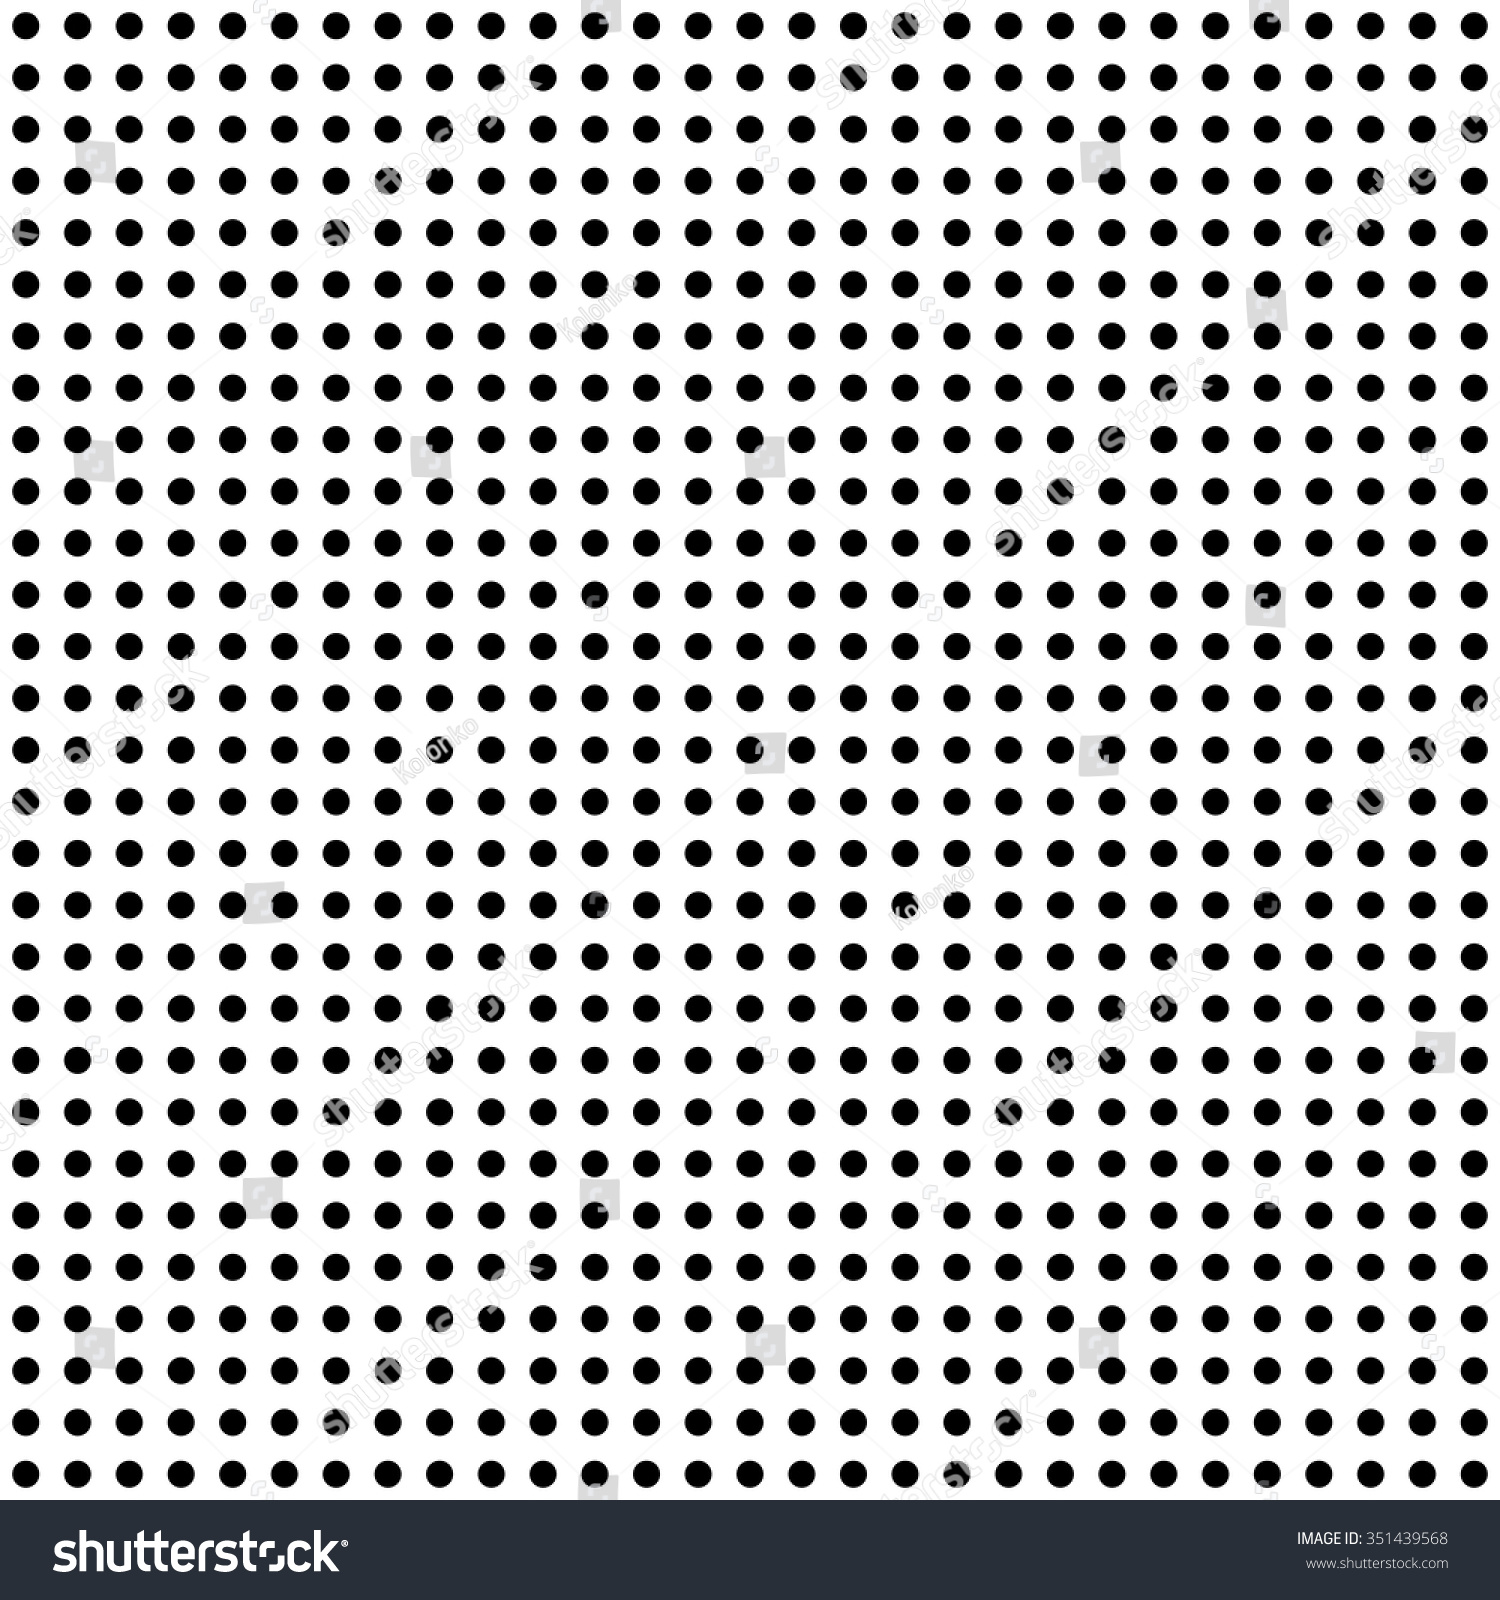 Wallpapers pattern fills web page backgrounds surface textures - Dot Grid Pattern Texture For Wallpaper Pattern Fills Web Page Background Surface